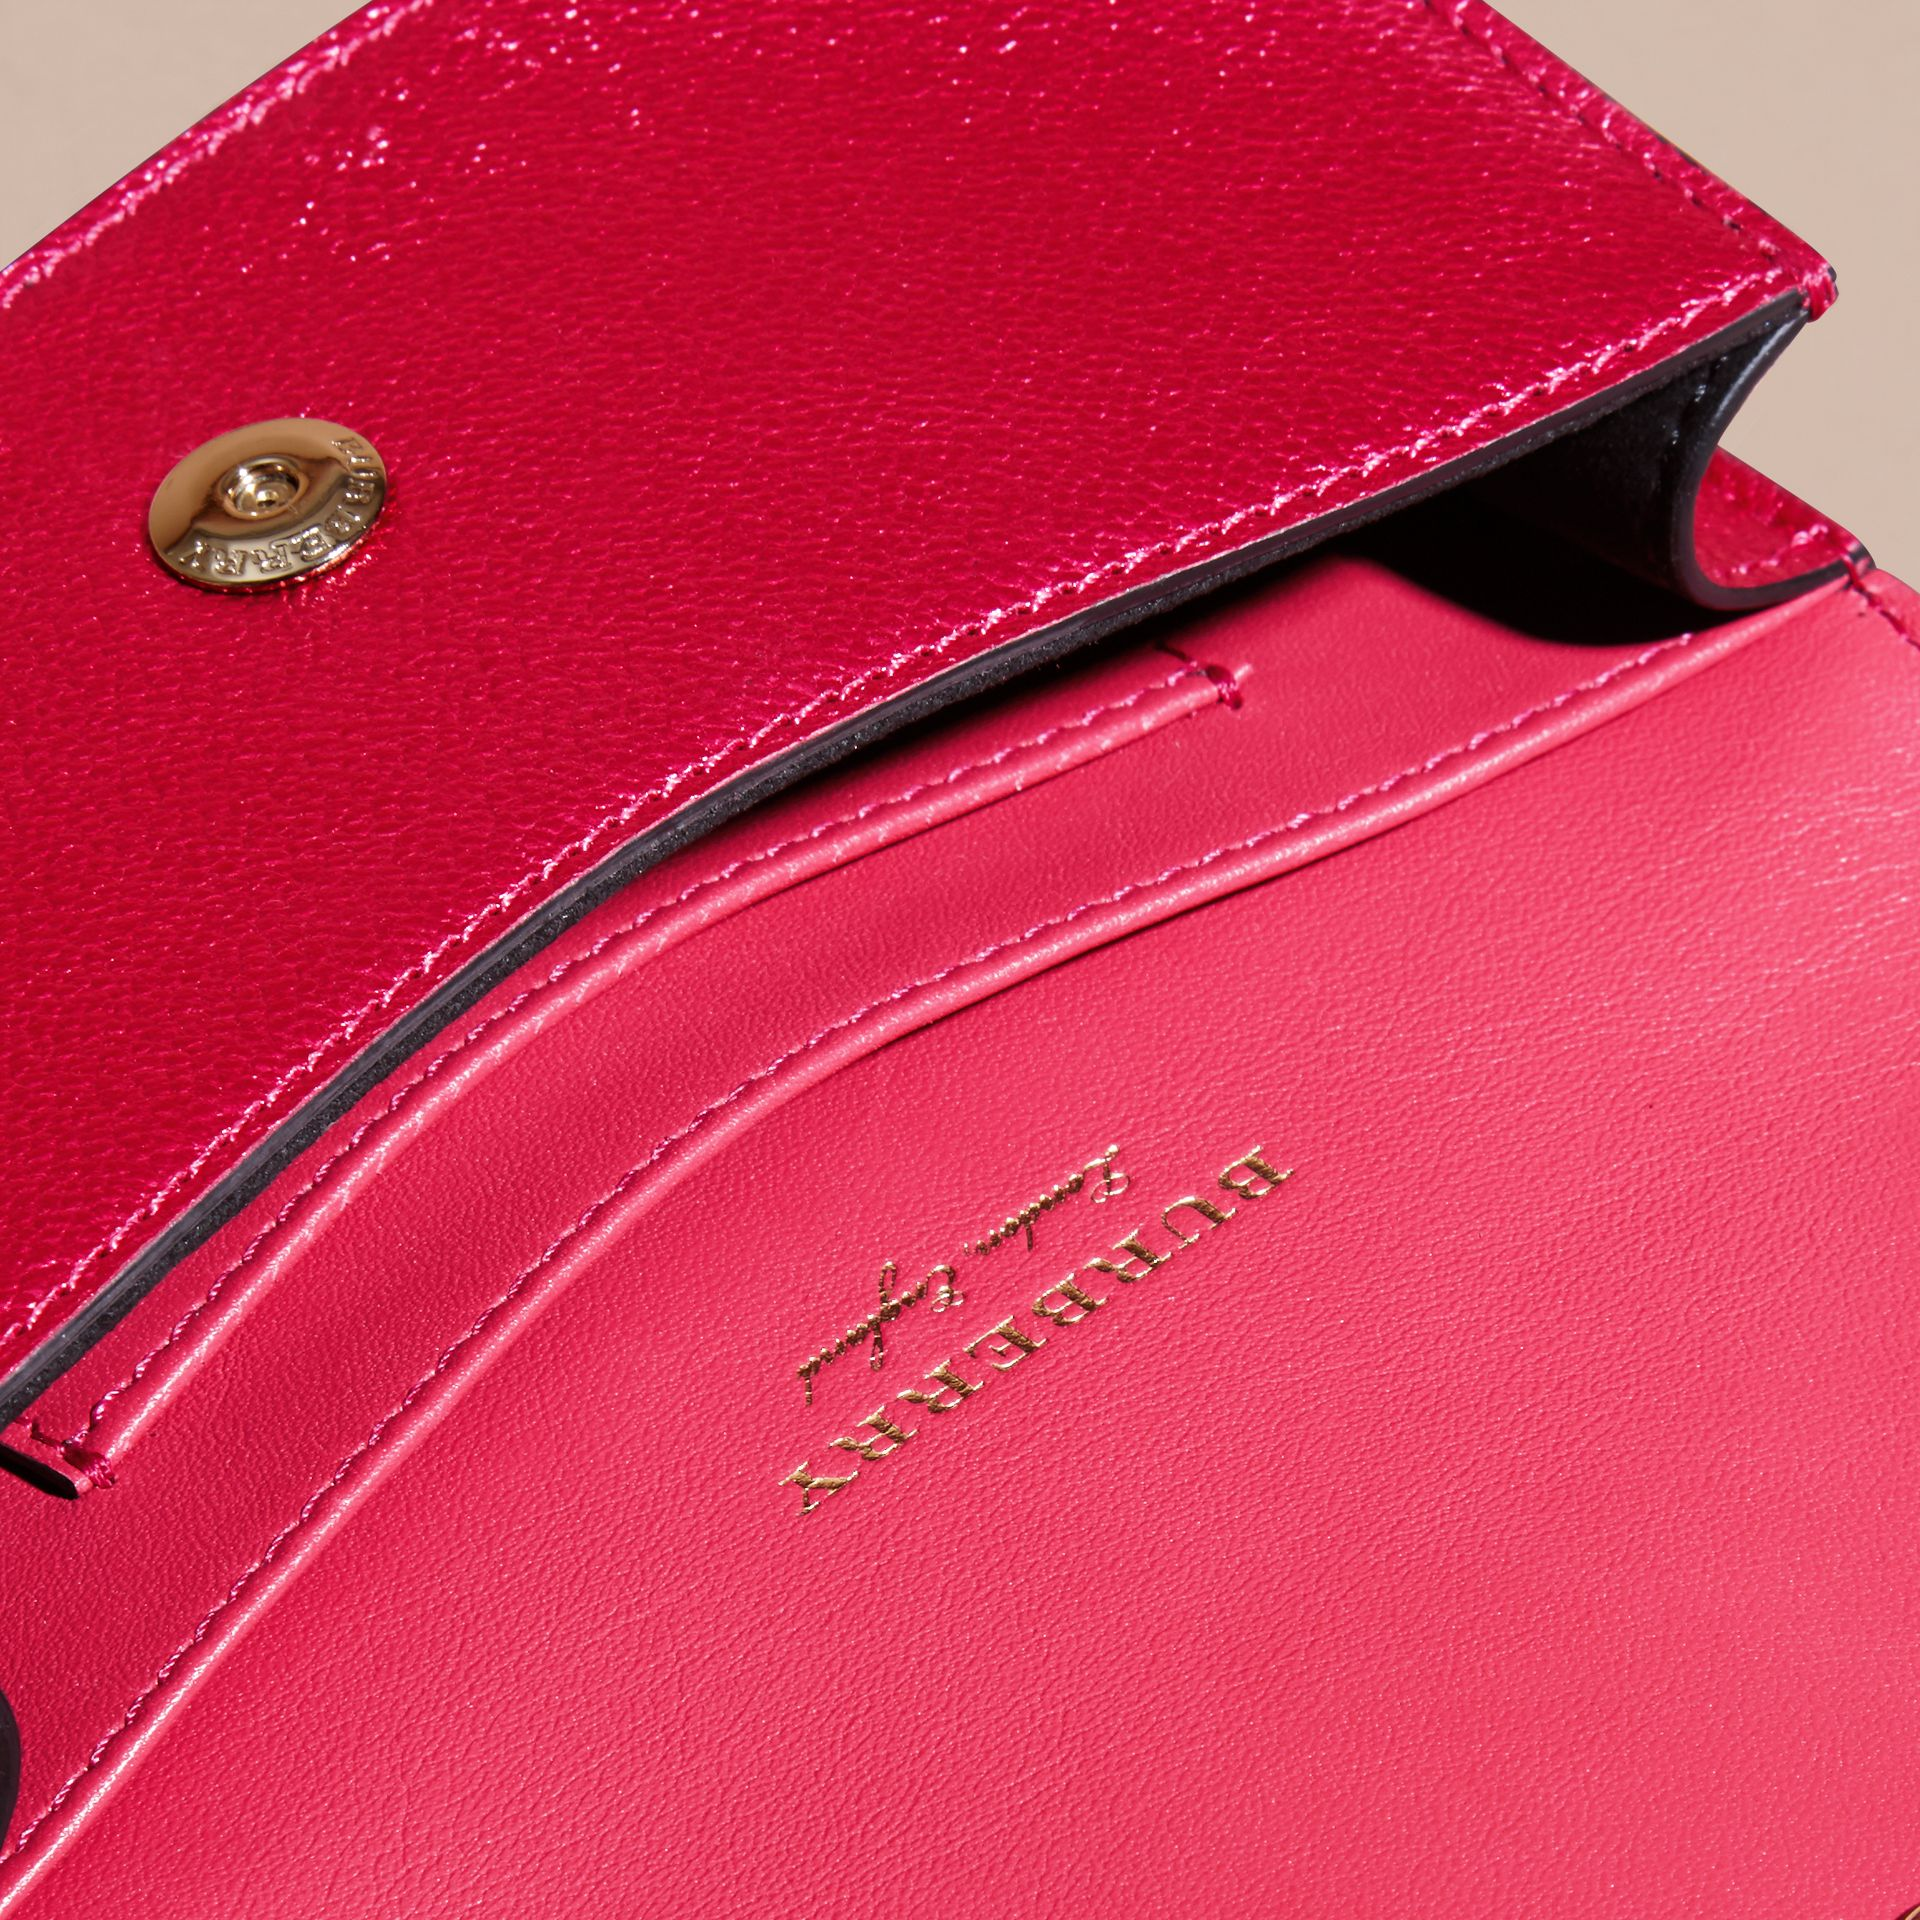 The Mini Buckle Bag in Metallic Grainy Leather in Bright Pink - gallery image 7